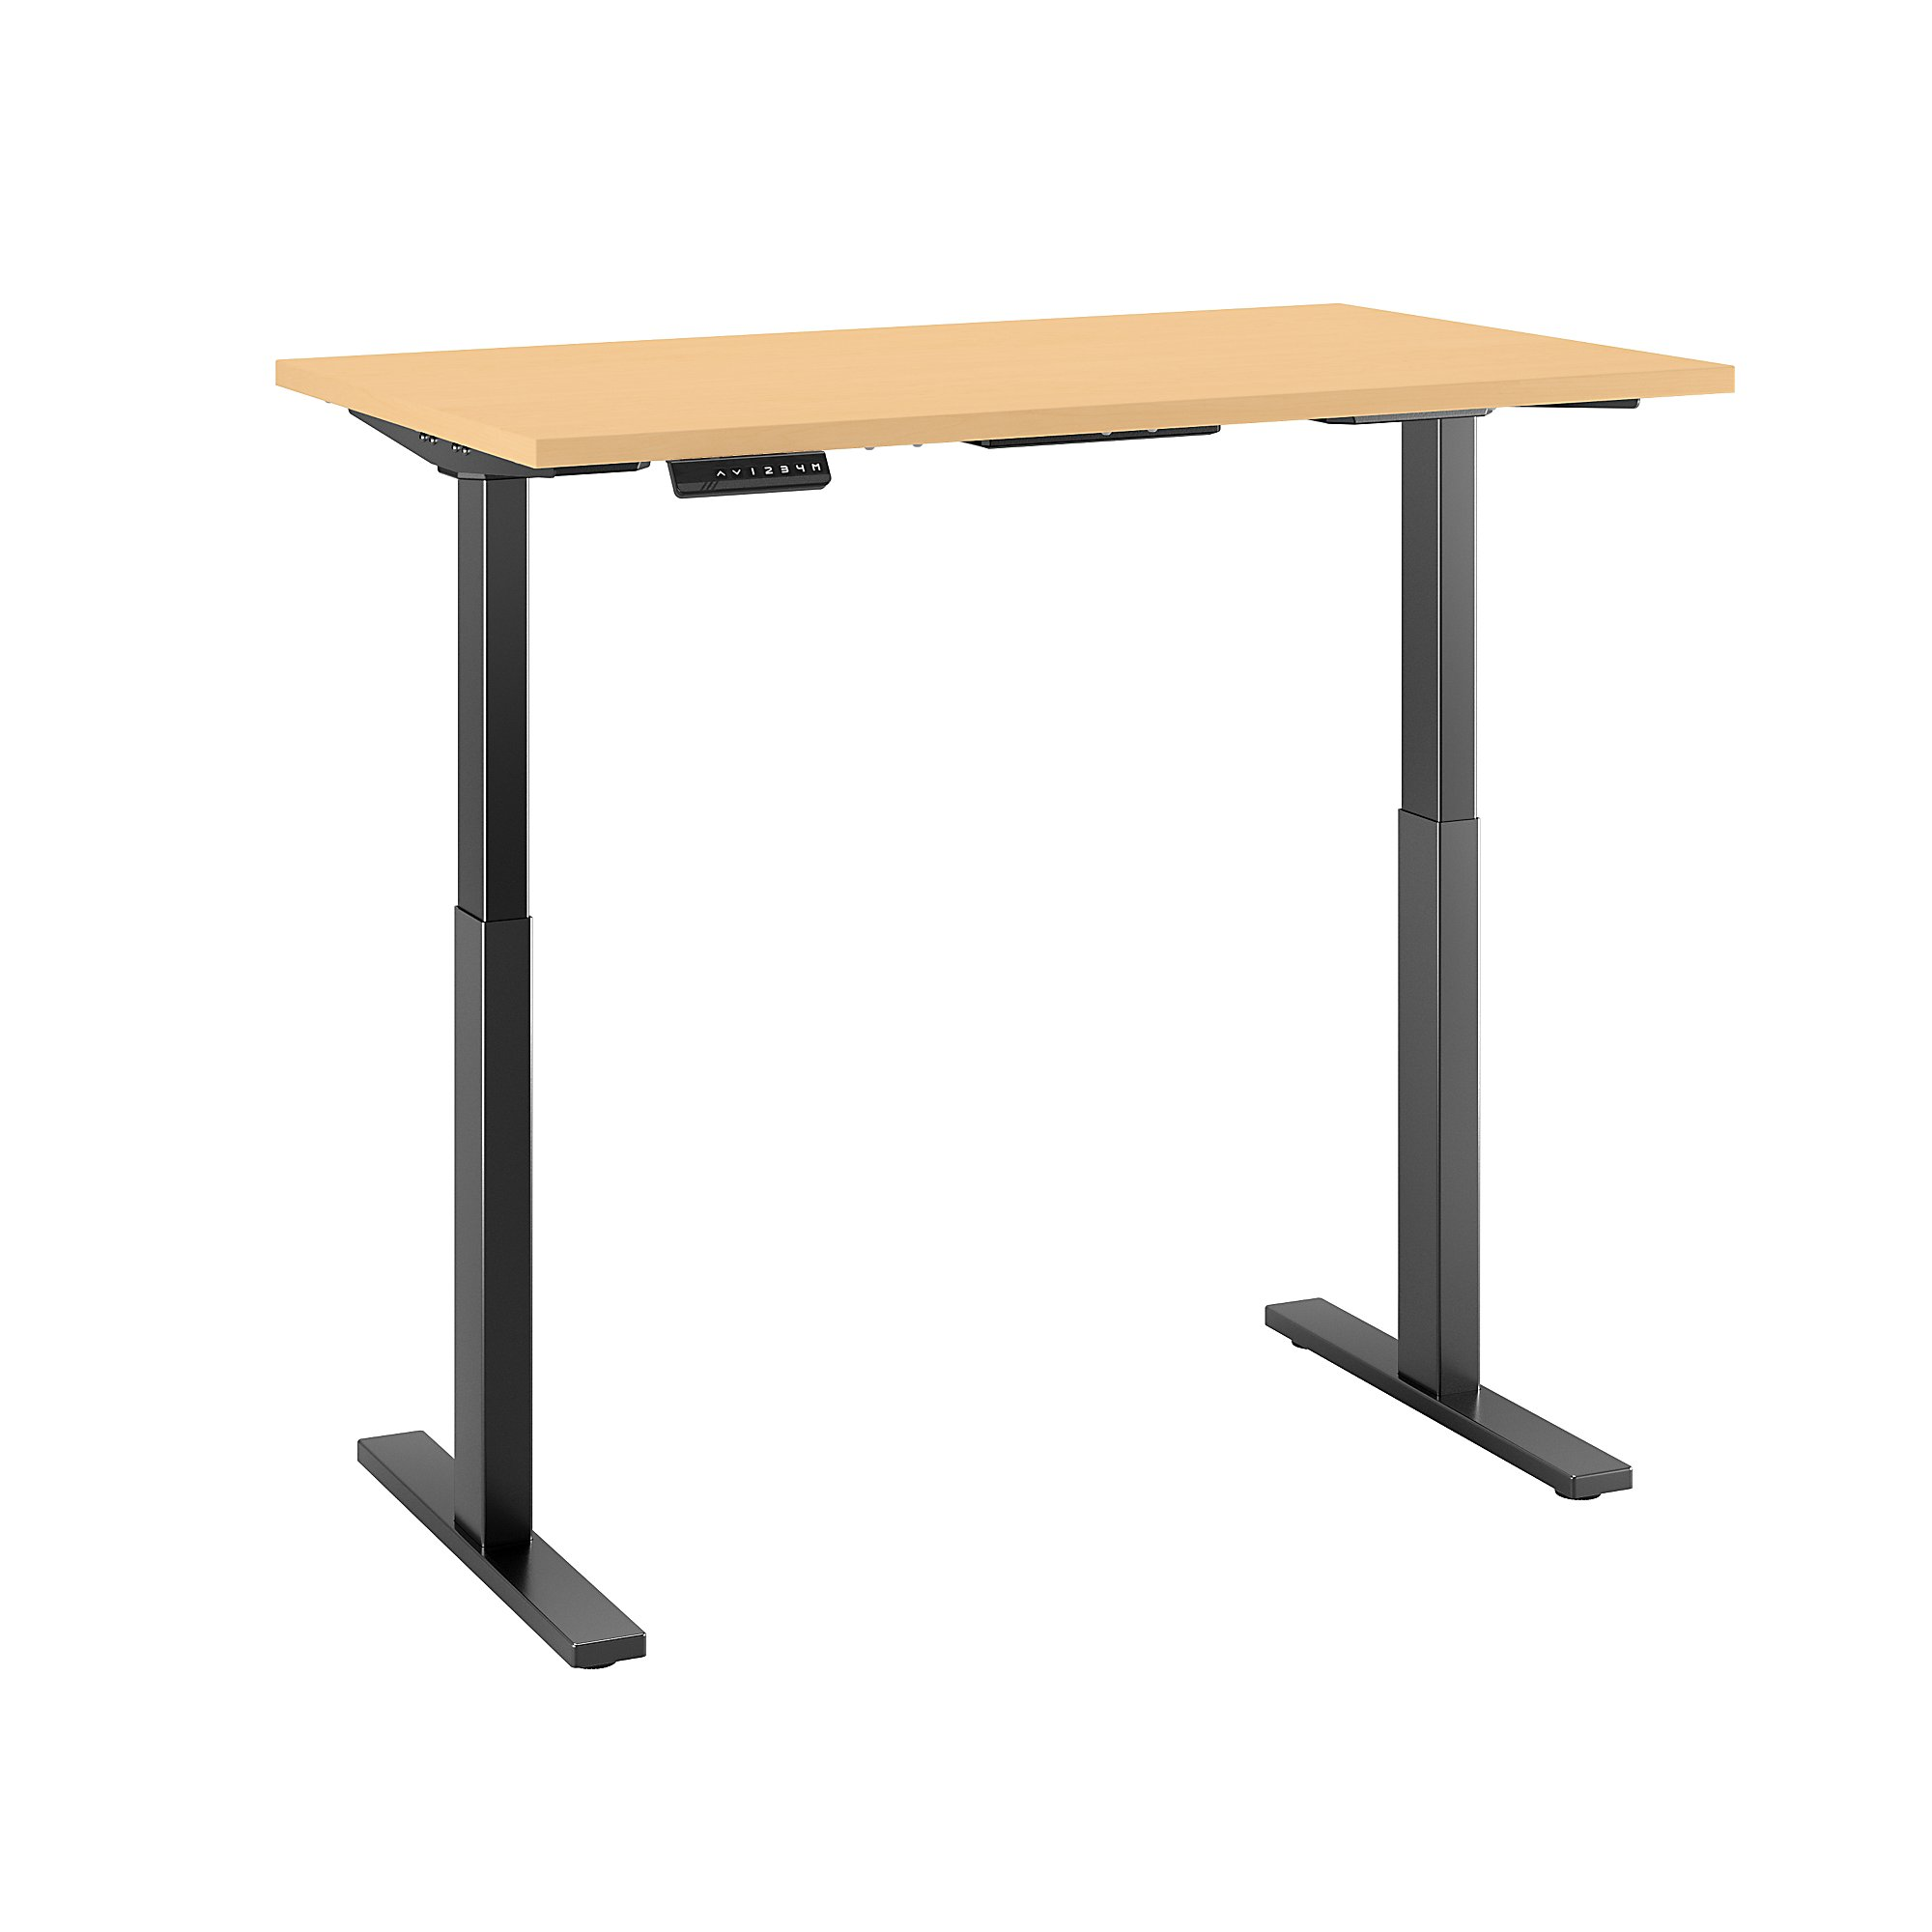 Sit stand desk adjustable CUB M6S4830ACBK FBB